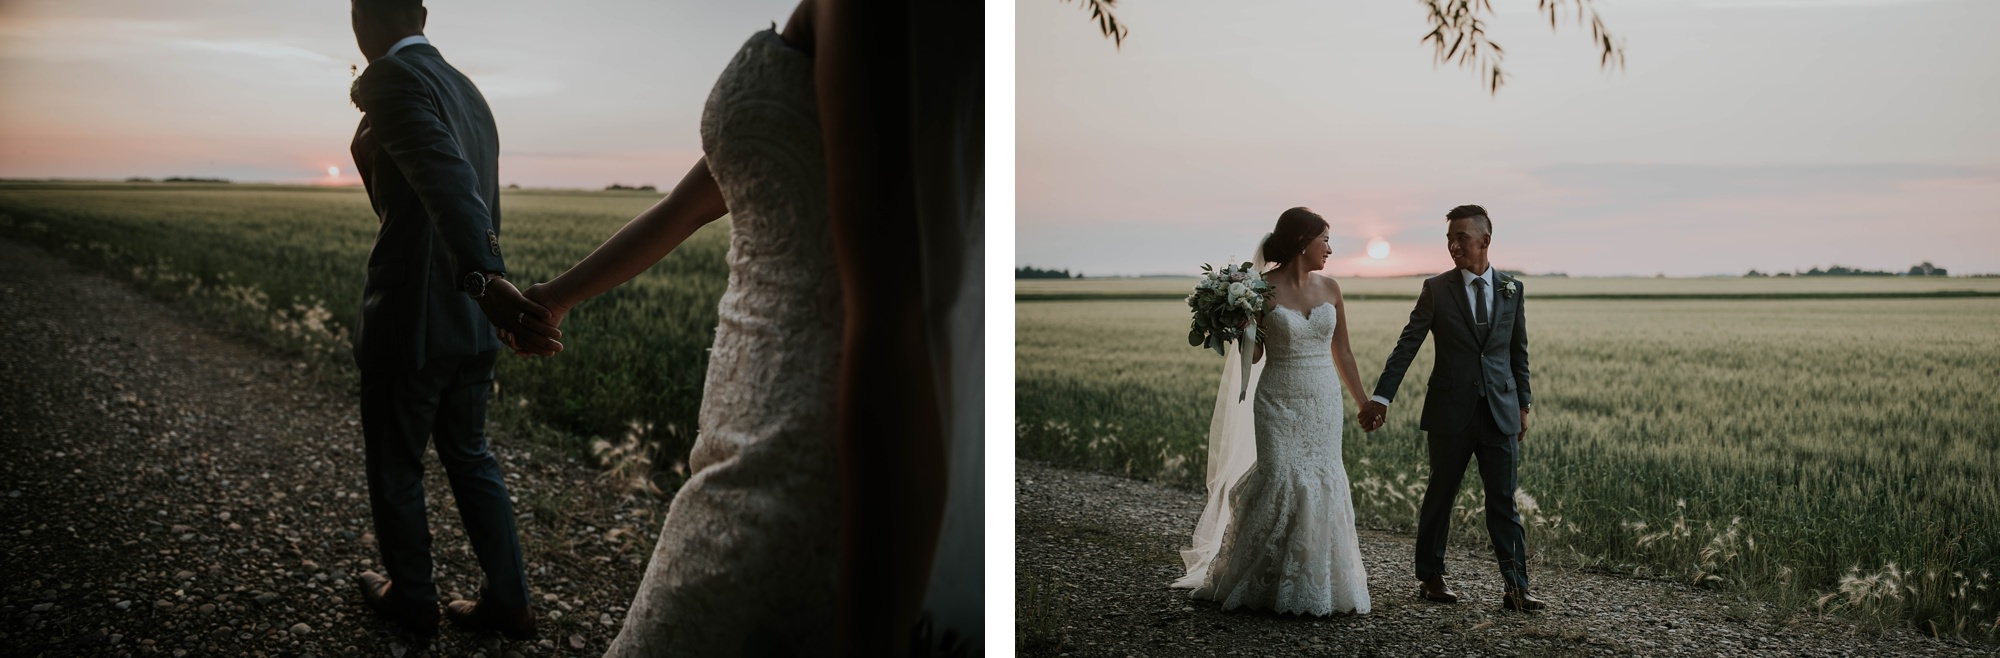 bride and groom for bridal portraits at willow lane barn wedding in olds alberta